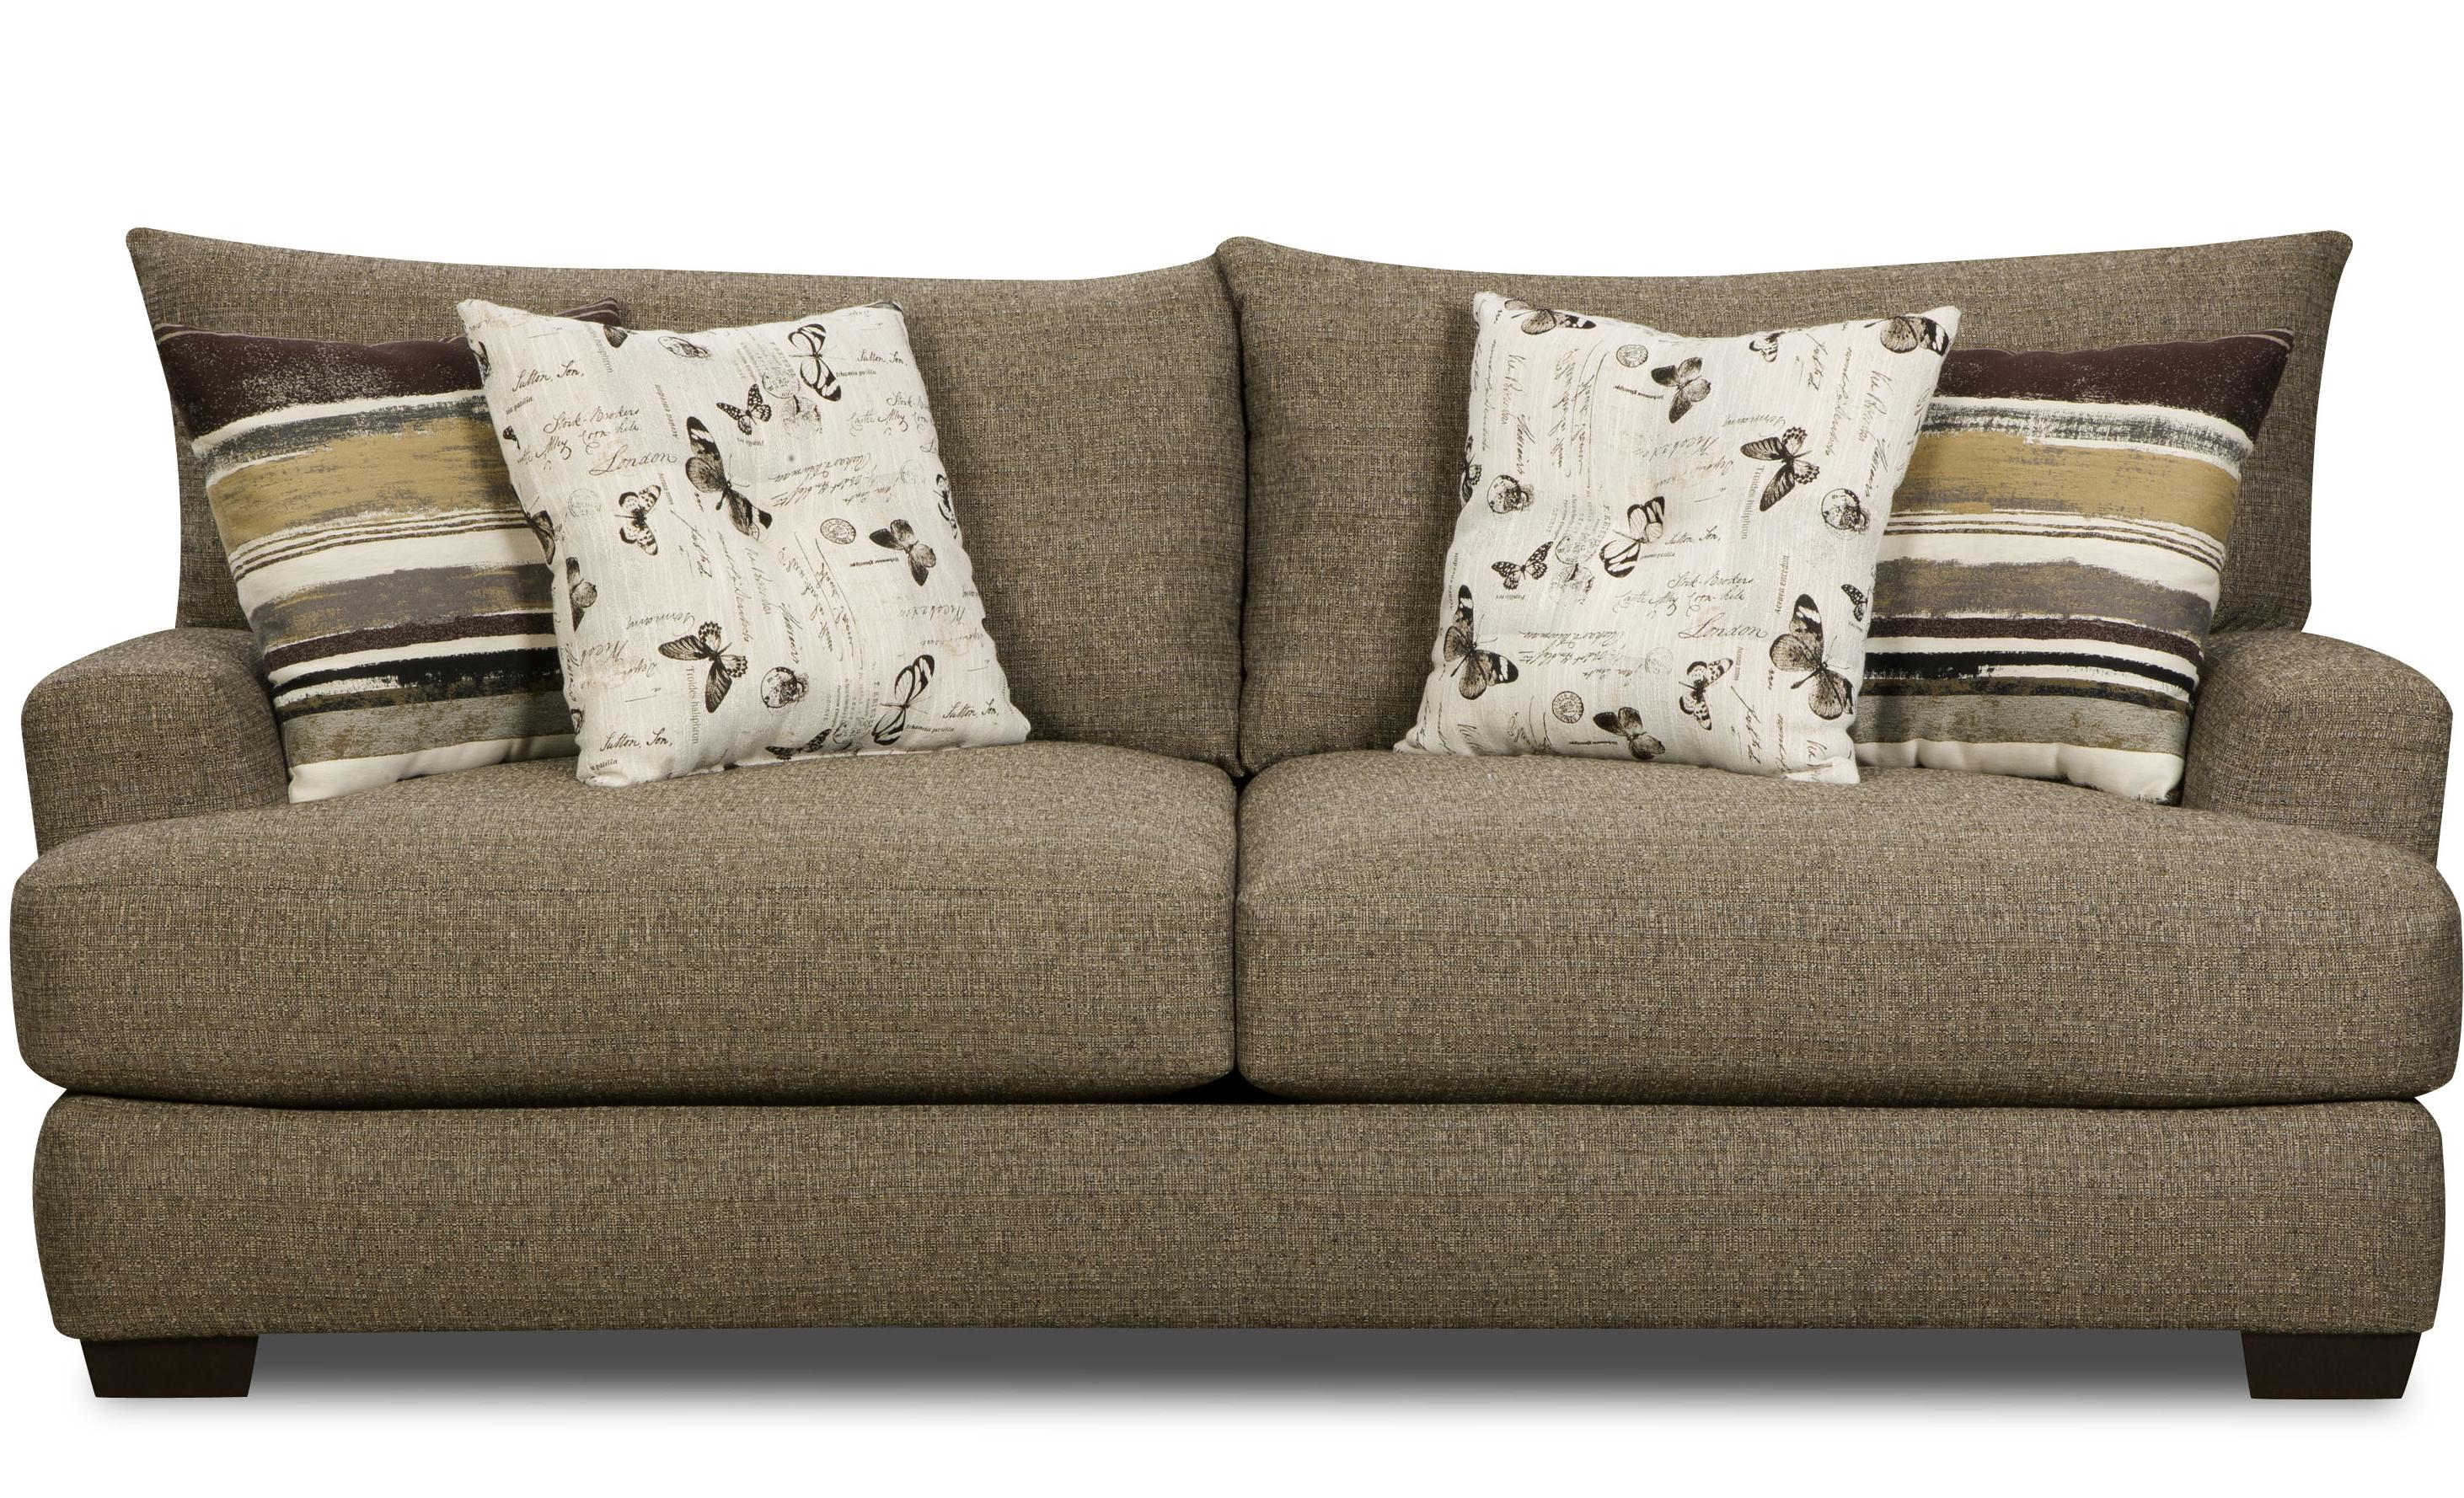 Selecting the Dressage Cushions for Sofa or Chairs   InspirationSeek com Casual Cushions For Sofa